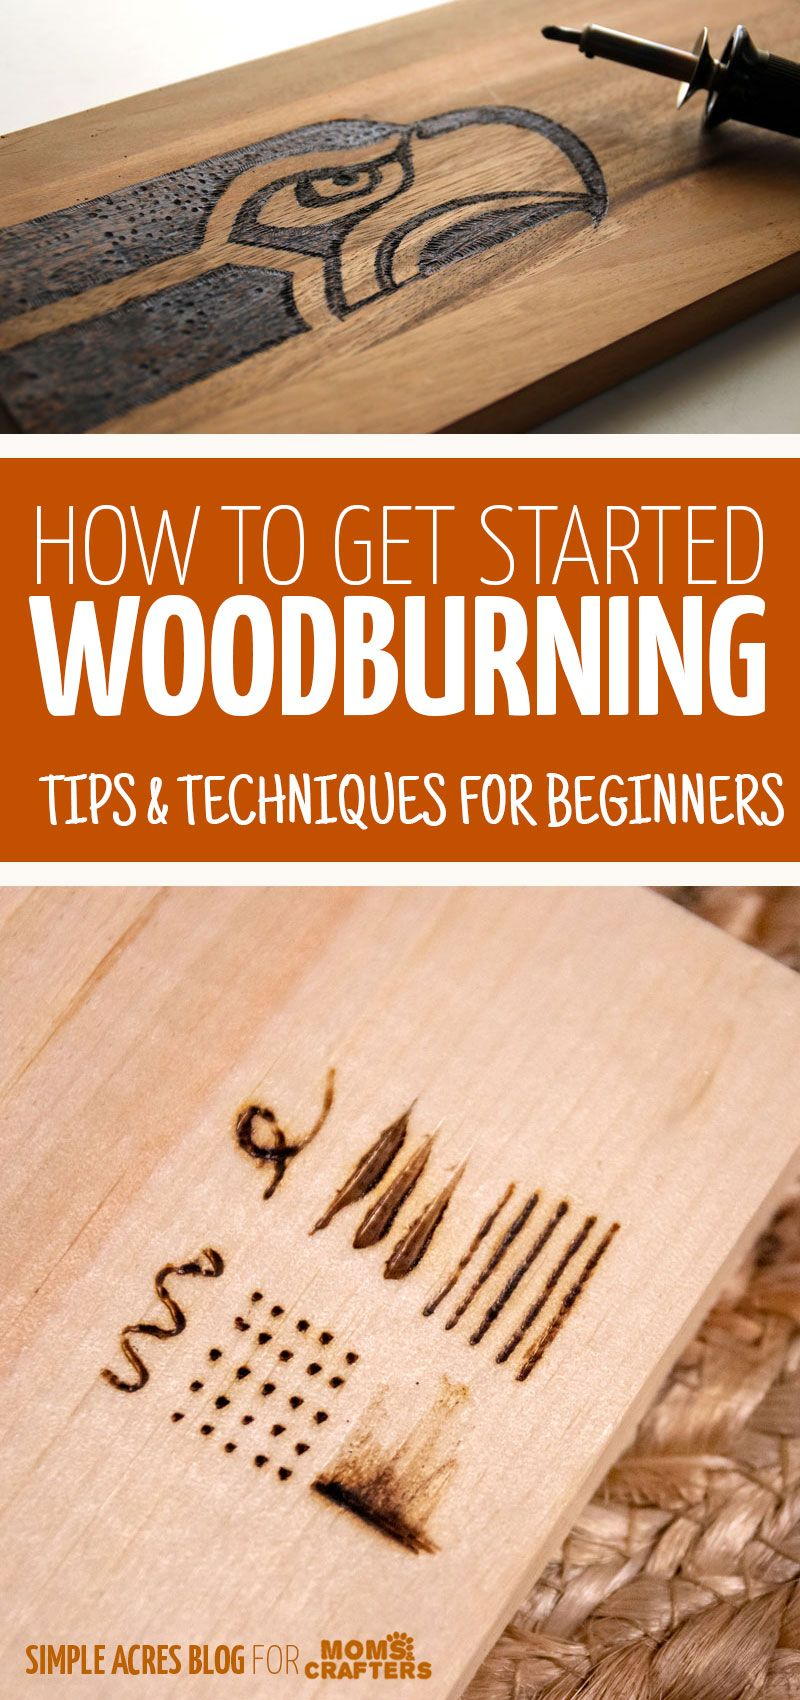 Photo of Woodburning Tips & Techniques for Beginners